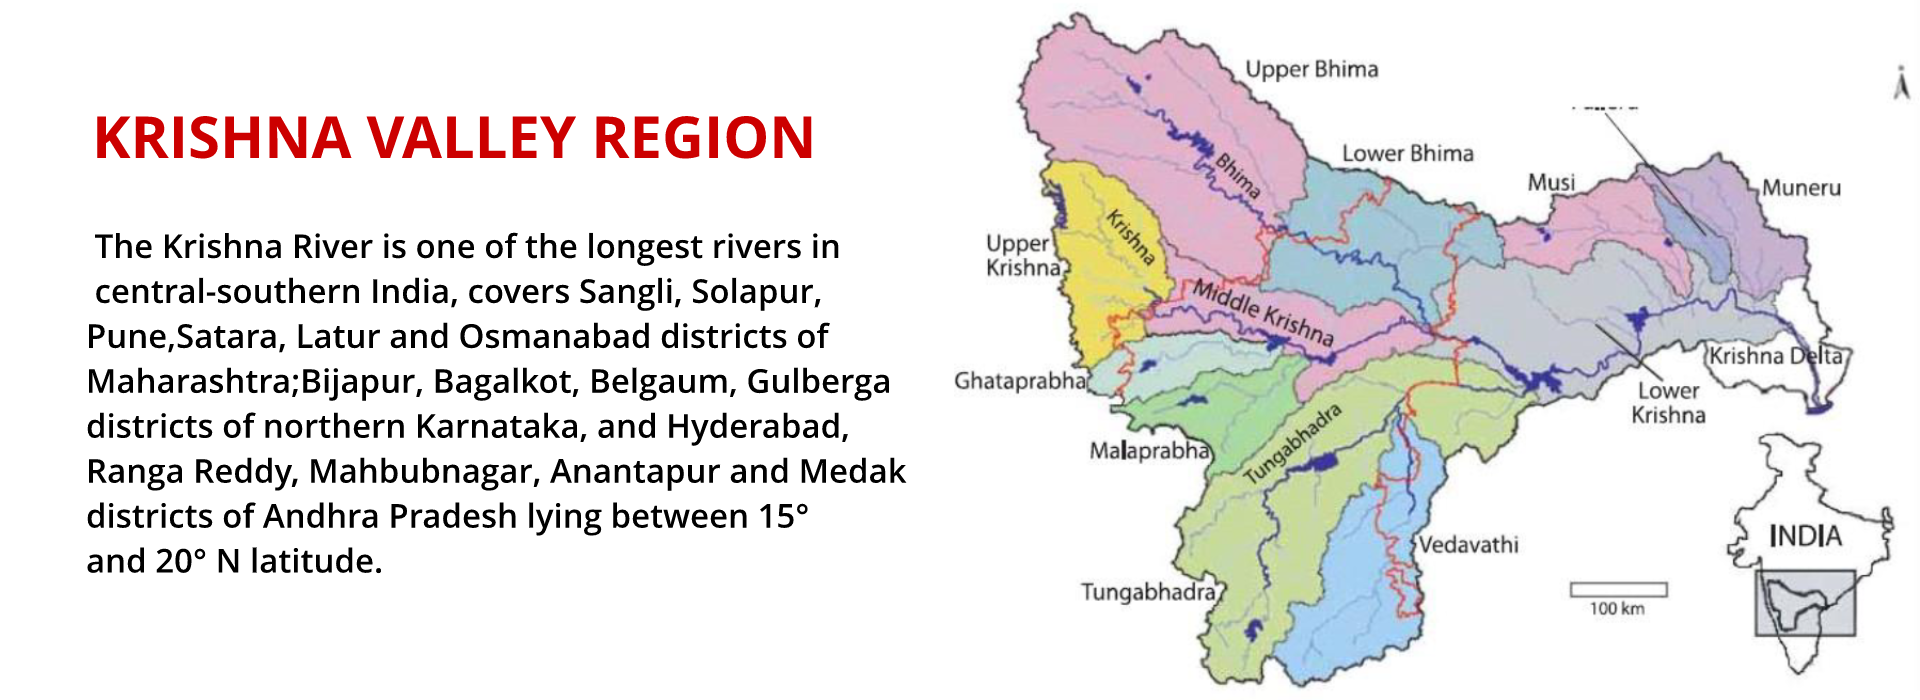 Krishna Valley Region